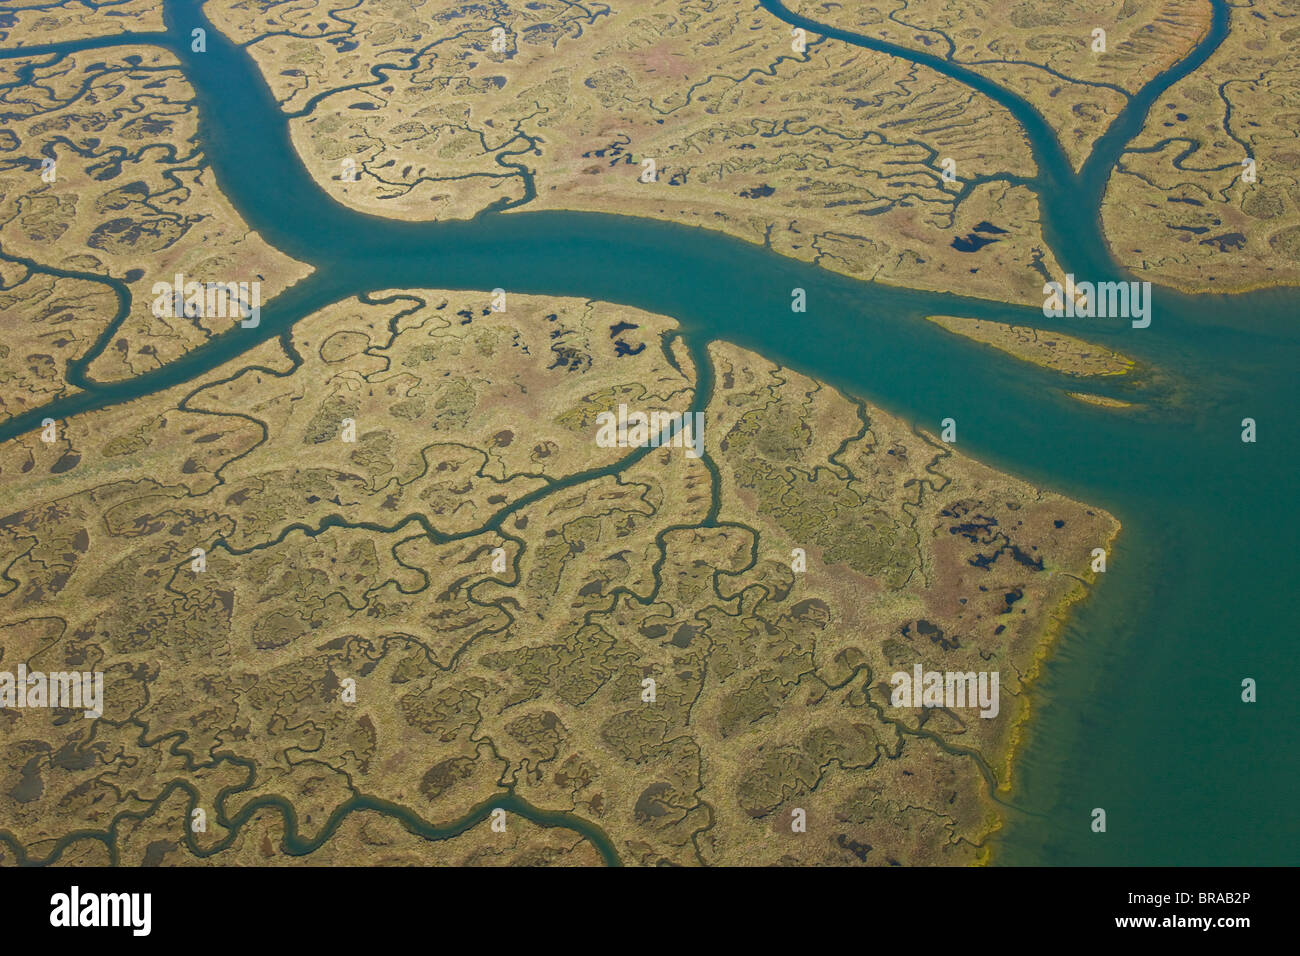 Aerial view of river tributaries, saltmarsh and coast, Odiel, Costa de la Luz, Huelva, Andalucia, Spain, March 2008 - Stock Image